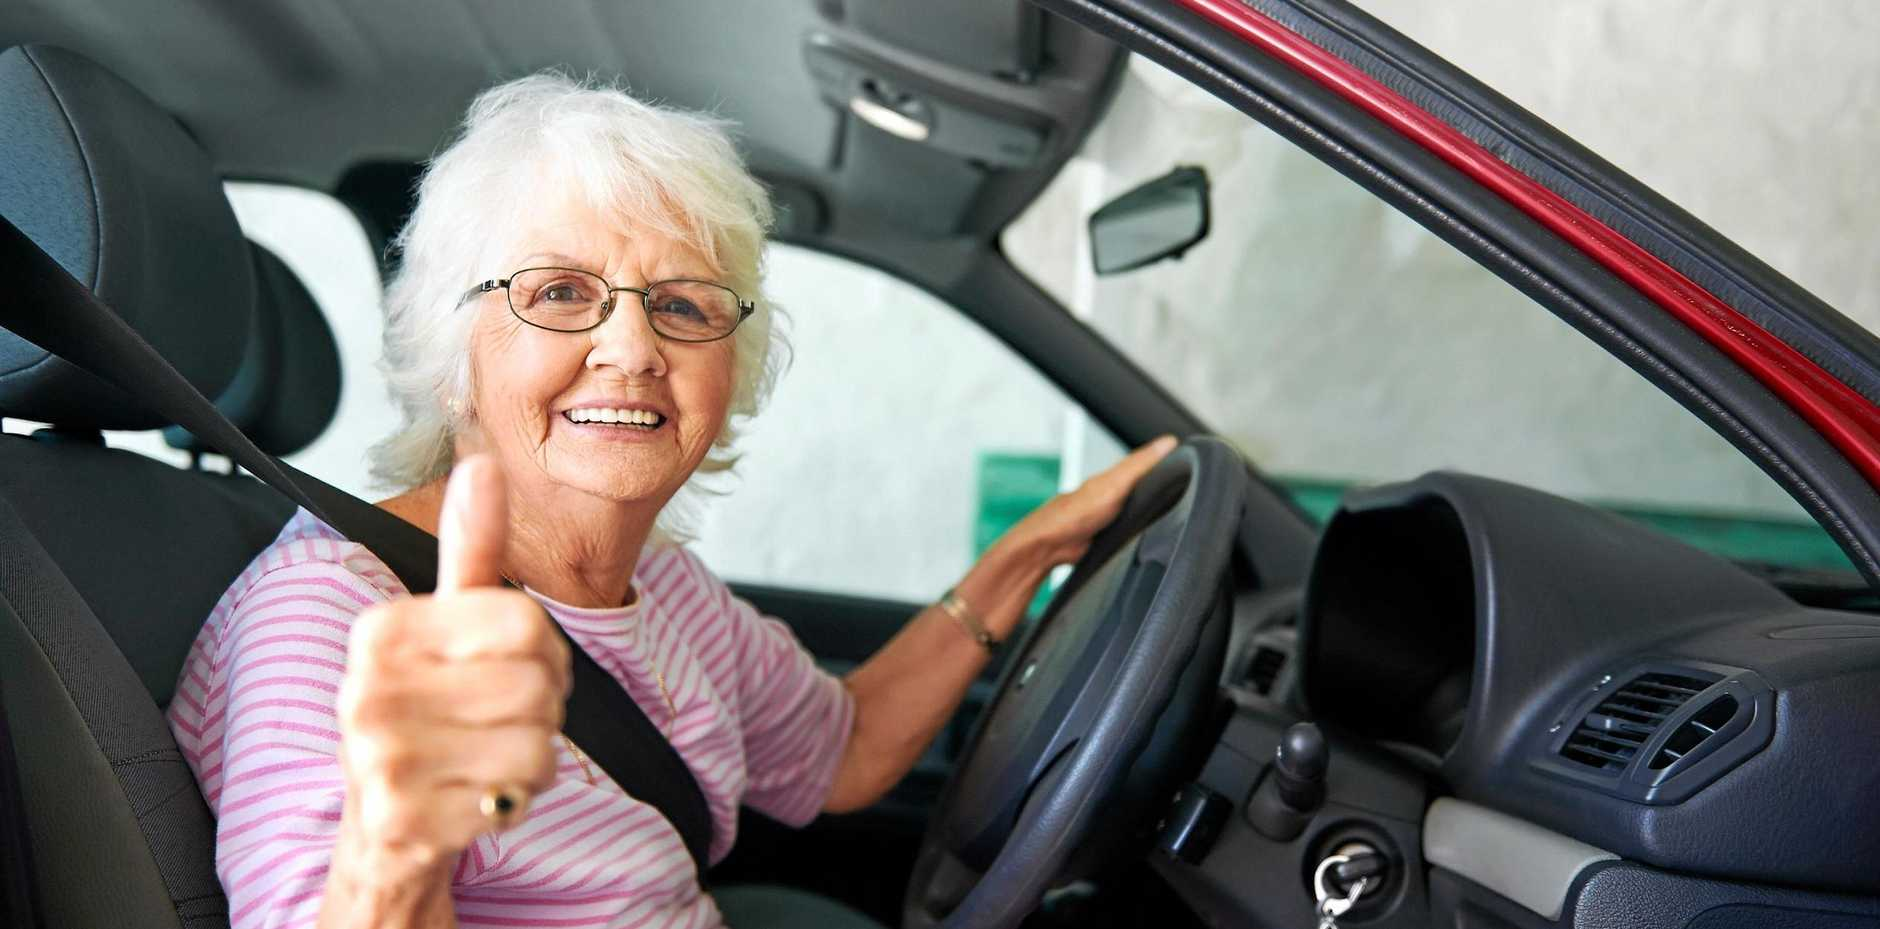 DRIVE SAFLEY: Seniors staying mobile safely.